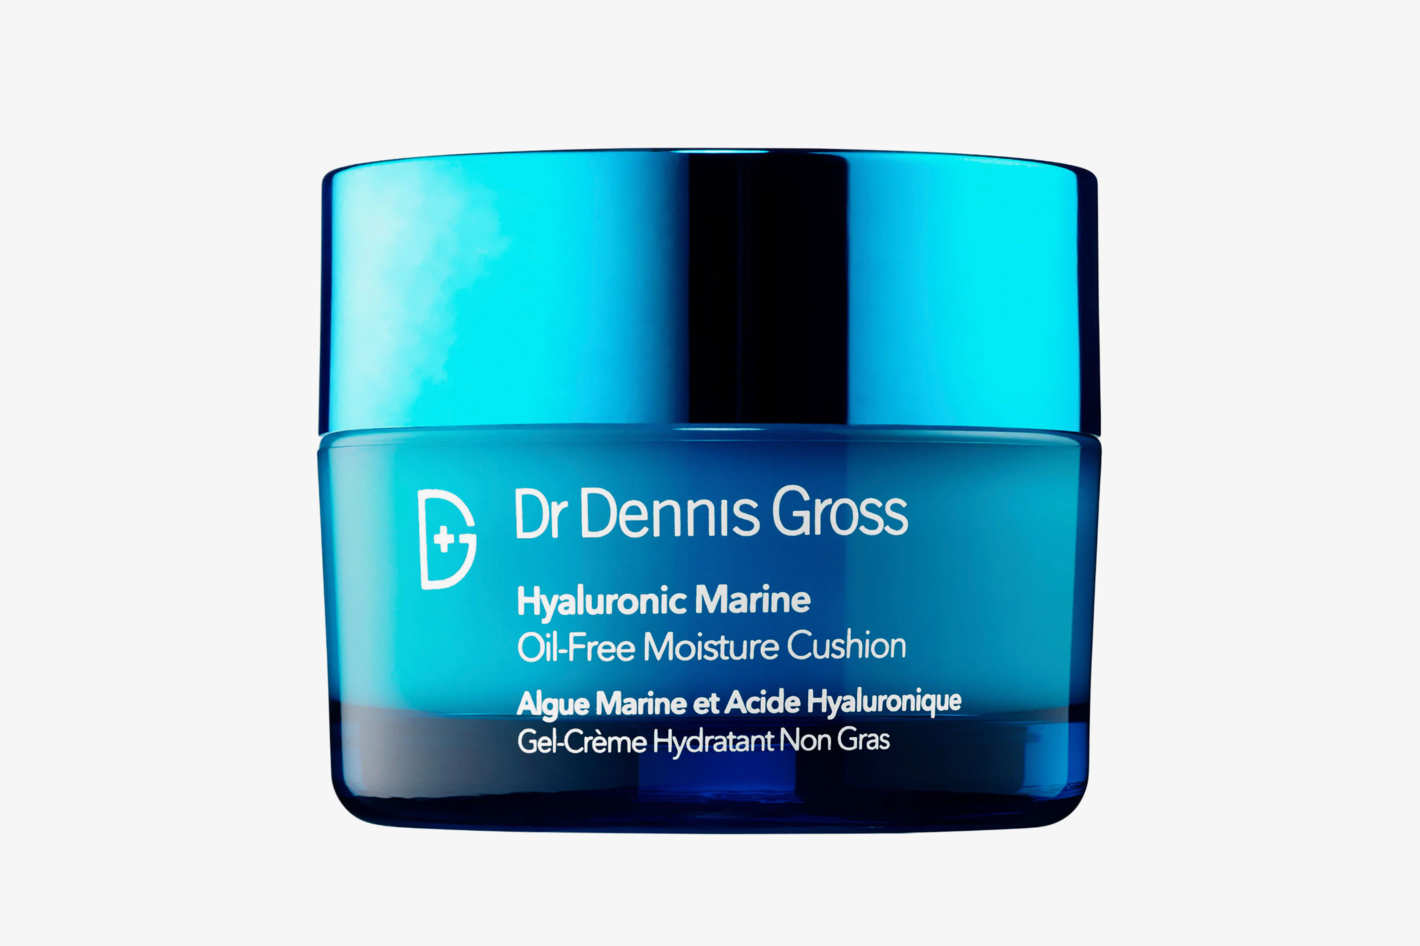 Dr. Dennis Gross Sephora Hyaluronic Marine Oil-Free Moisture Cushion